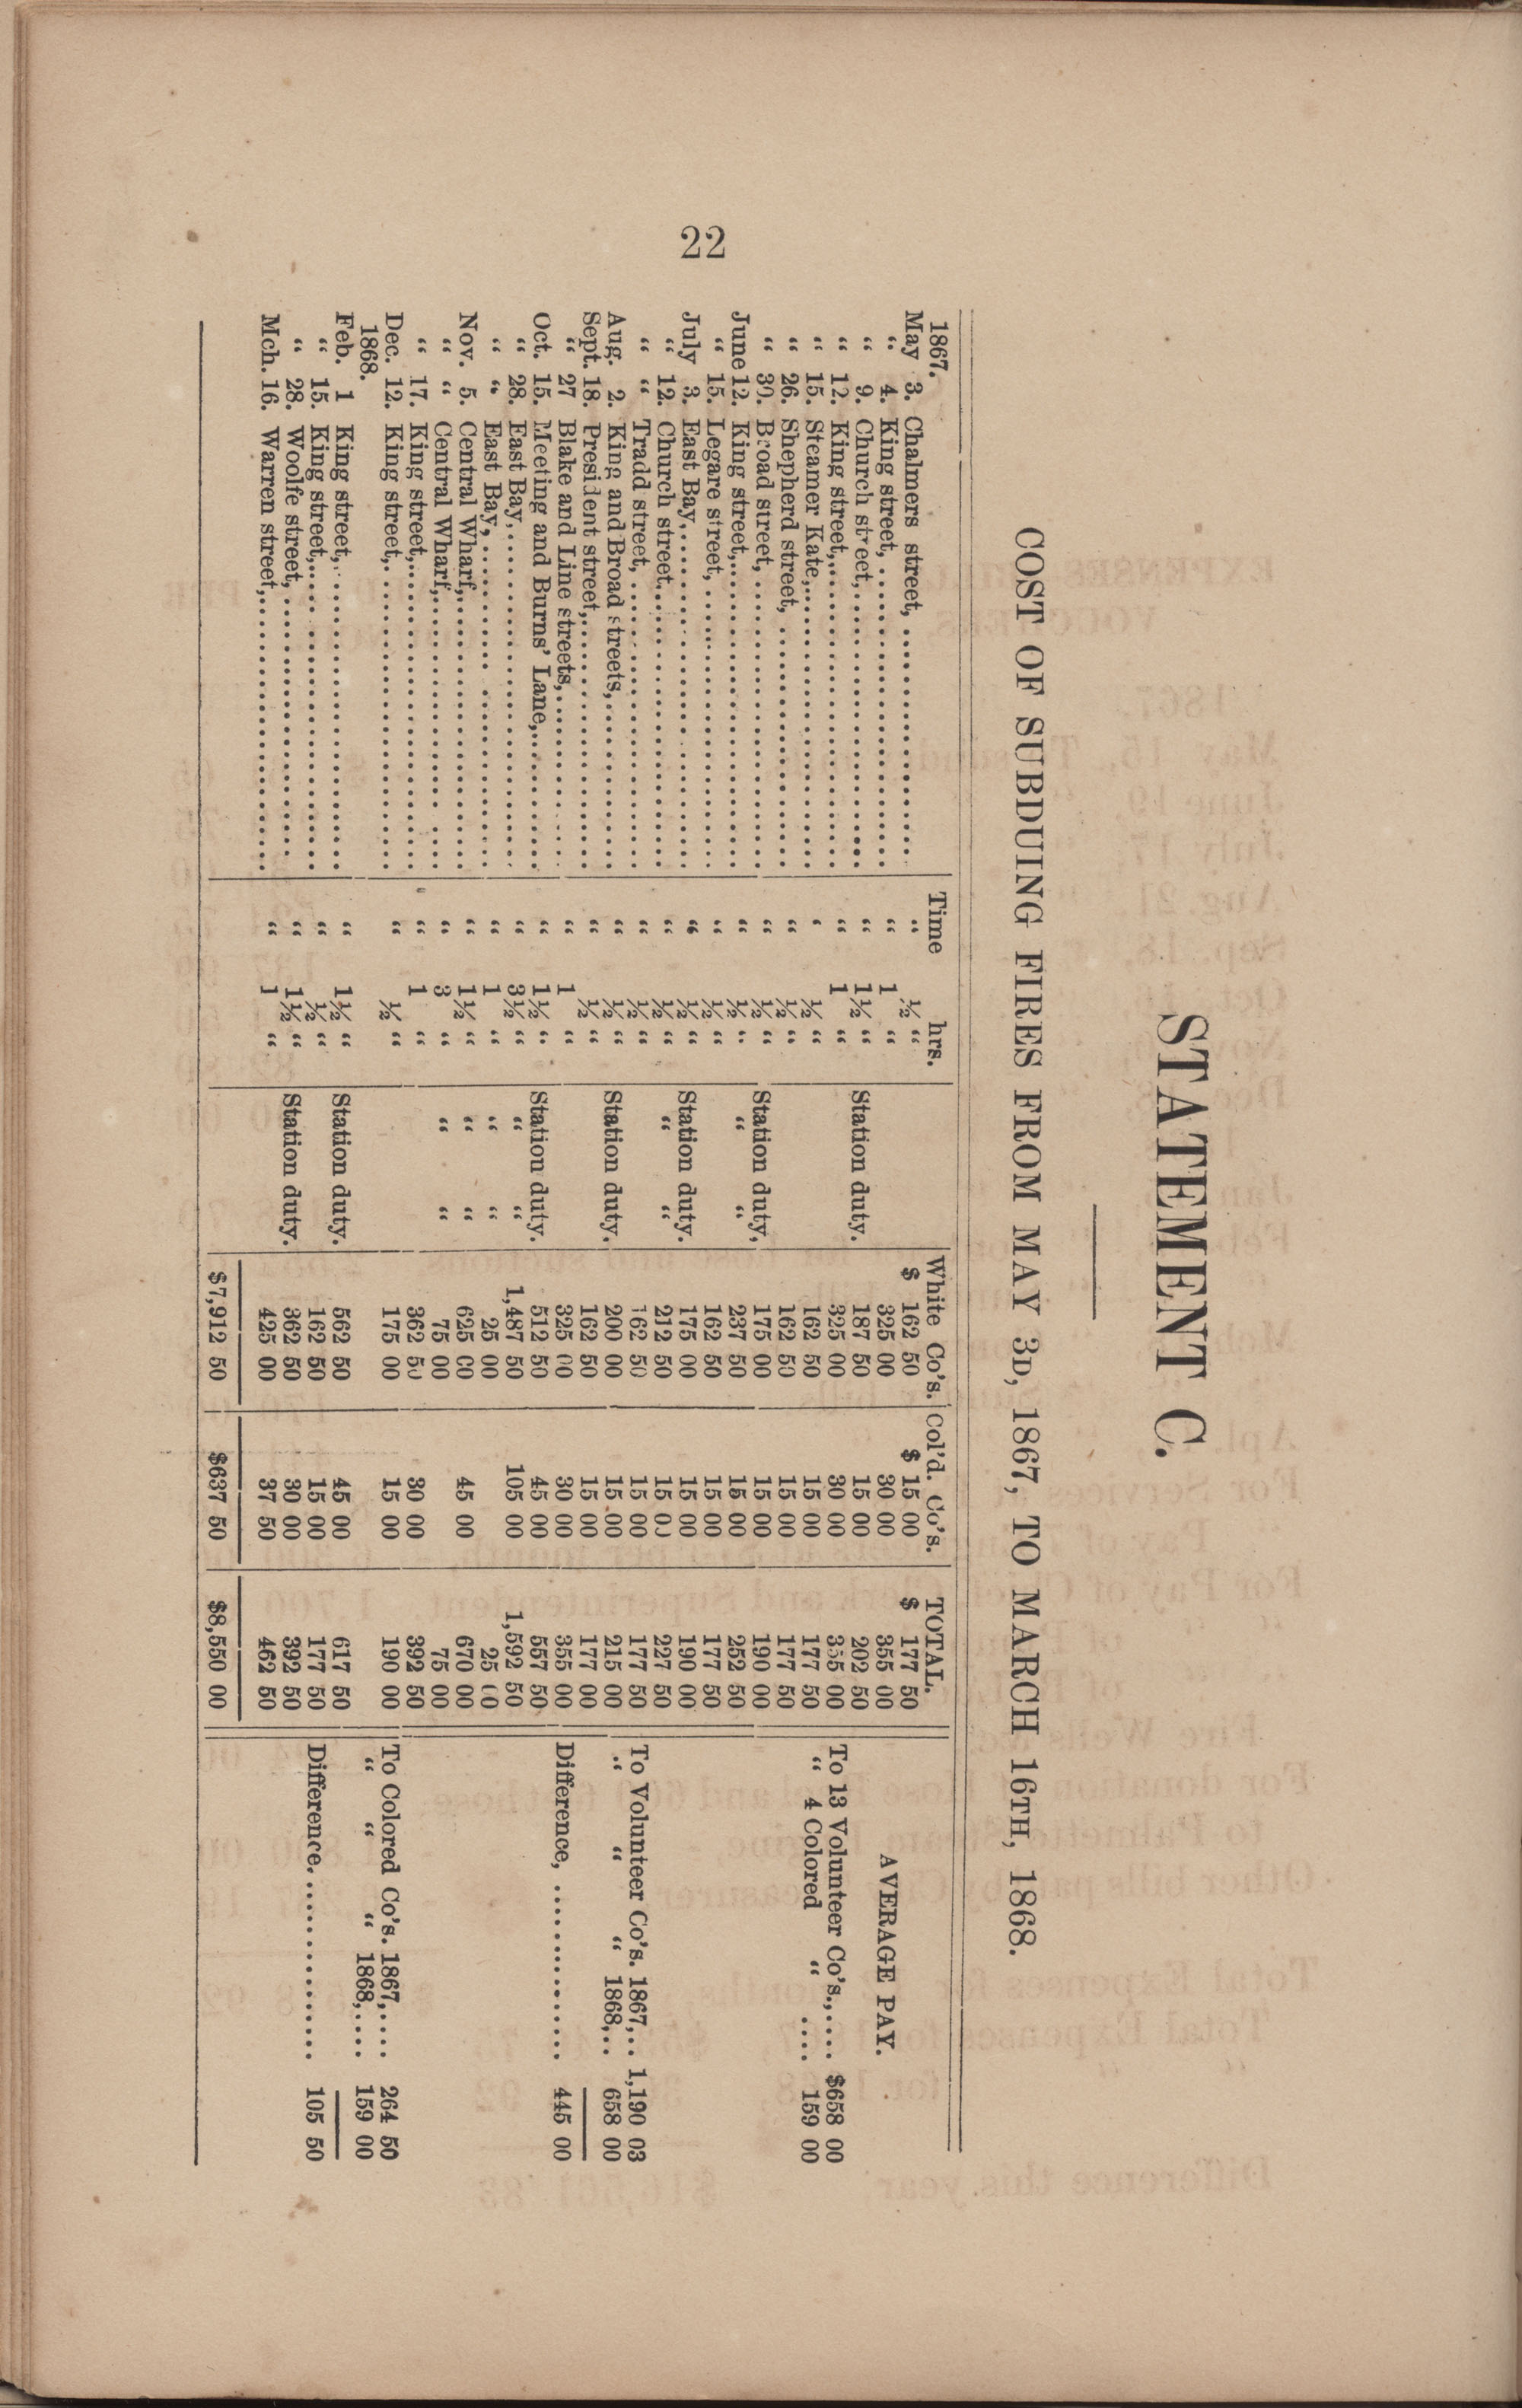 Annual Report of the Chief of the Fire Department of the City of Charleston, page 200